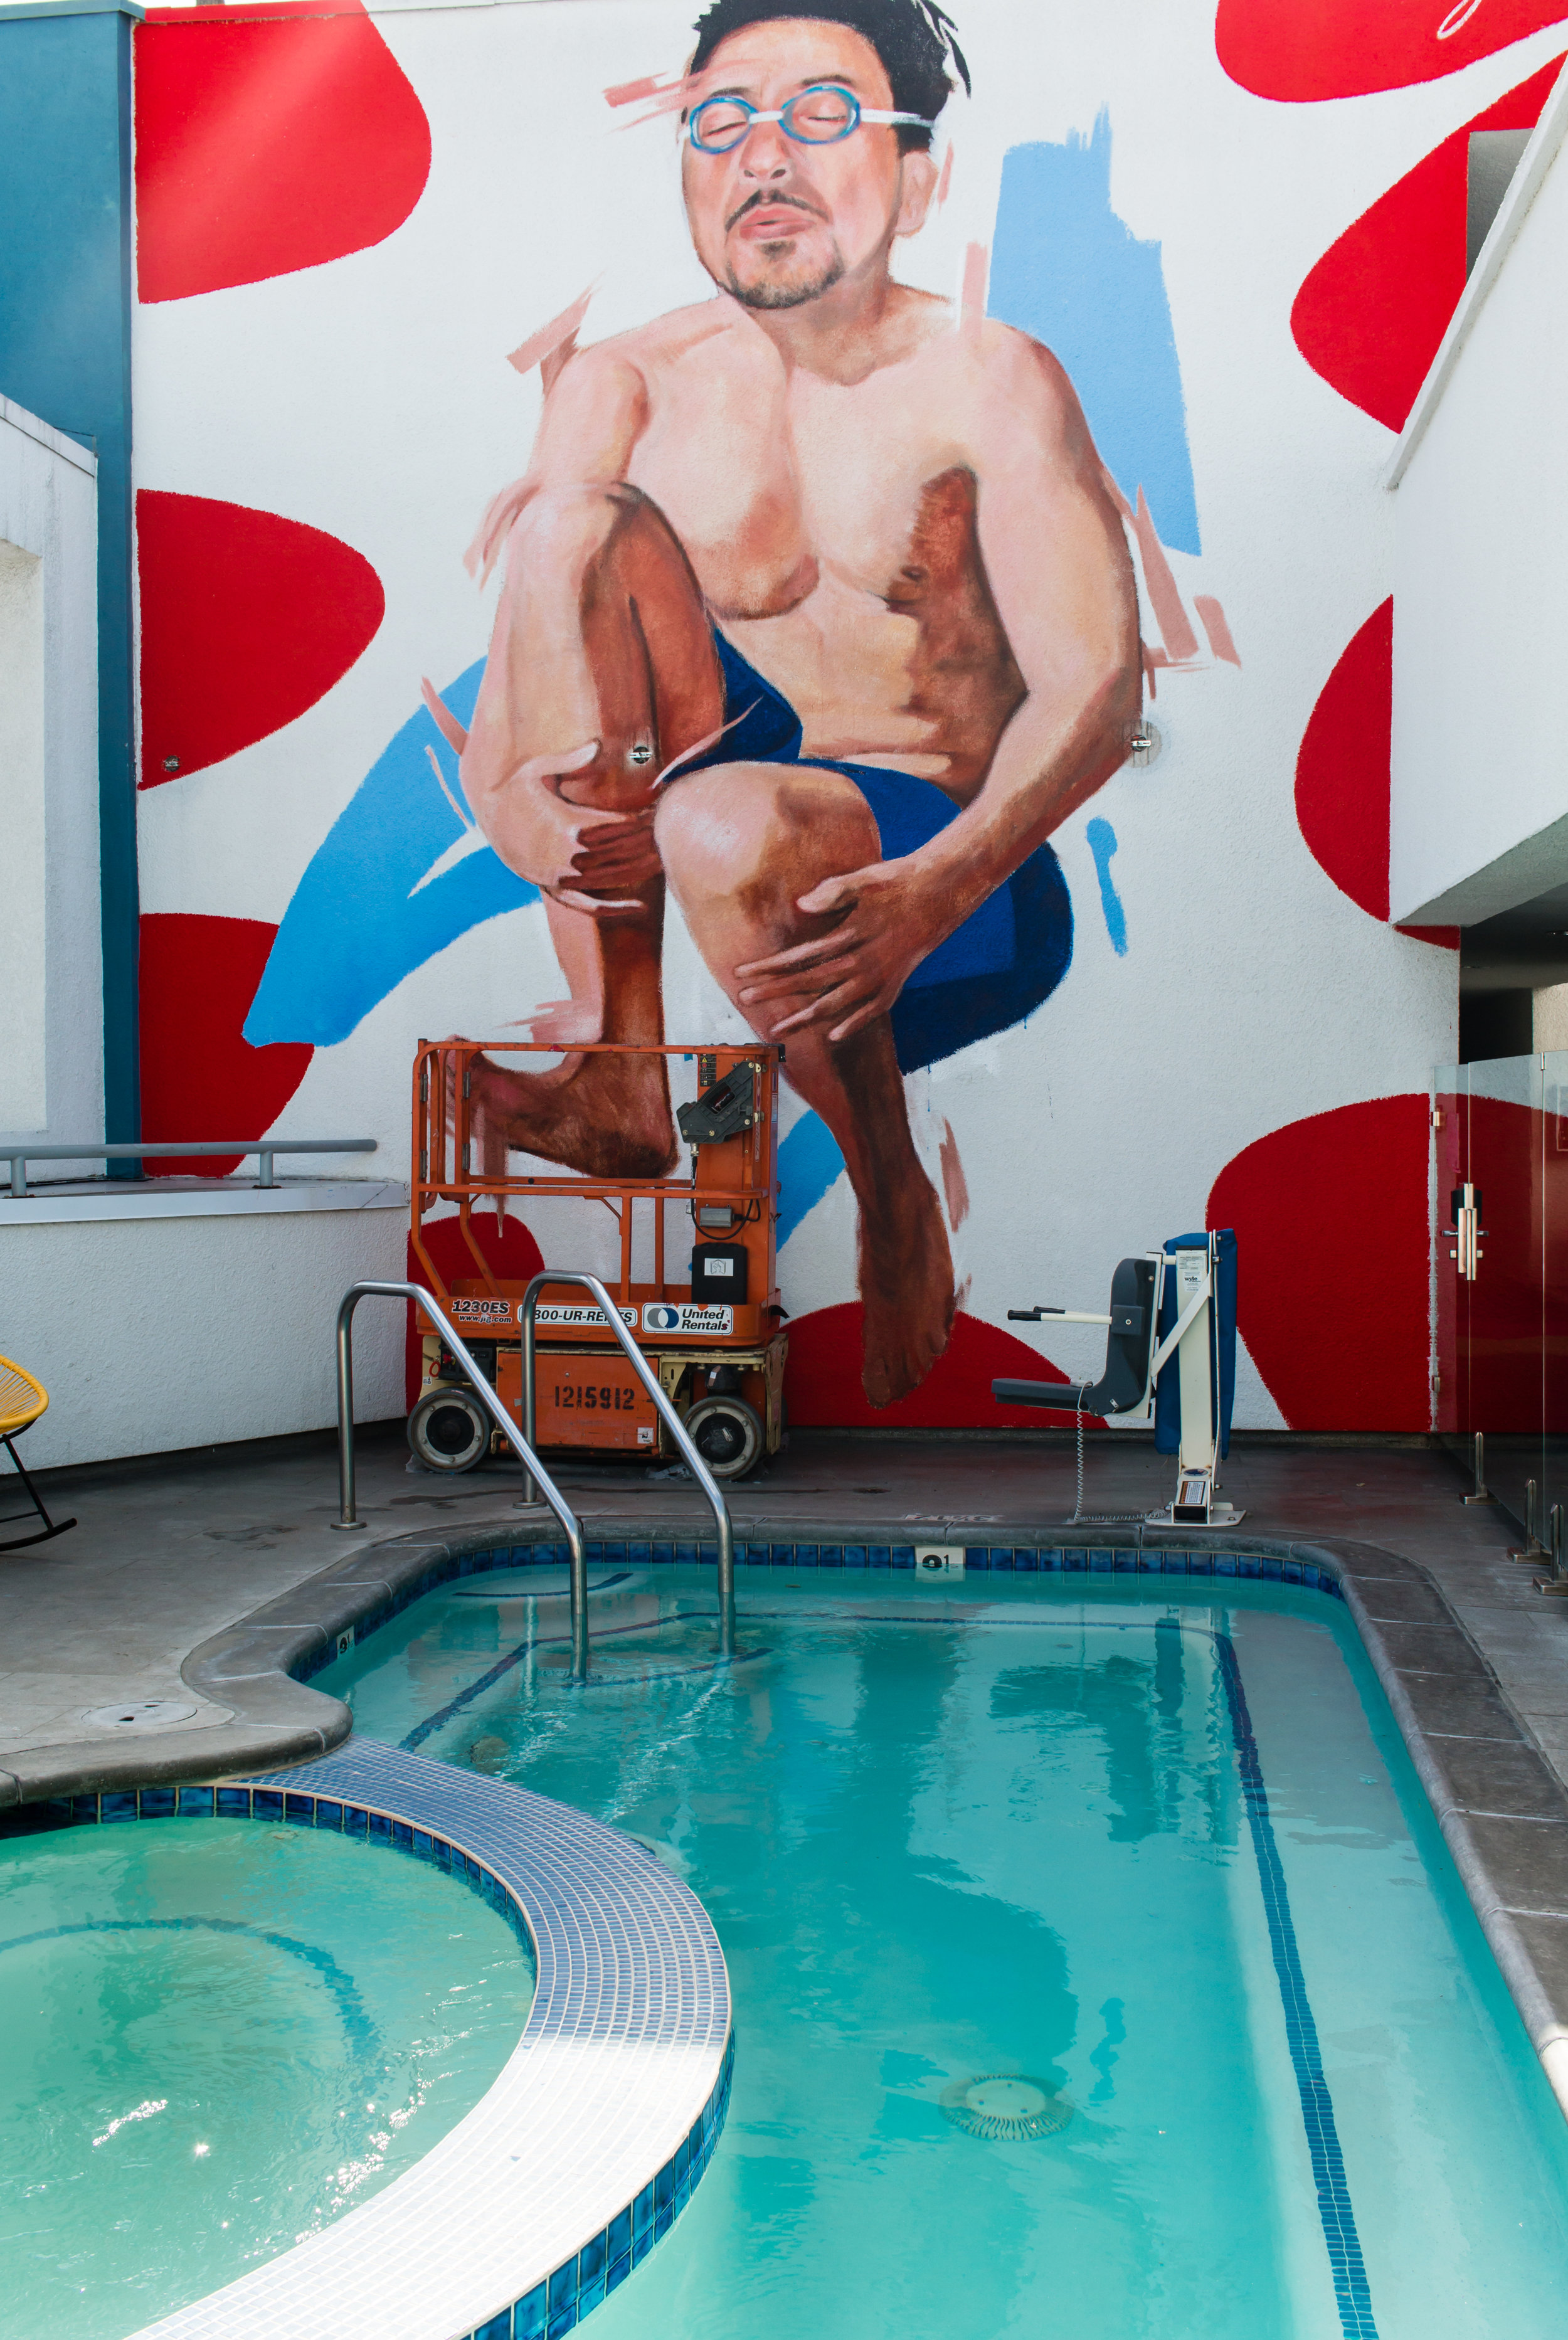 the-kinney-hotel-venice-beach-swimming-pool